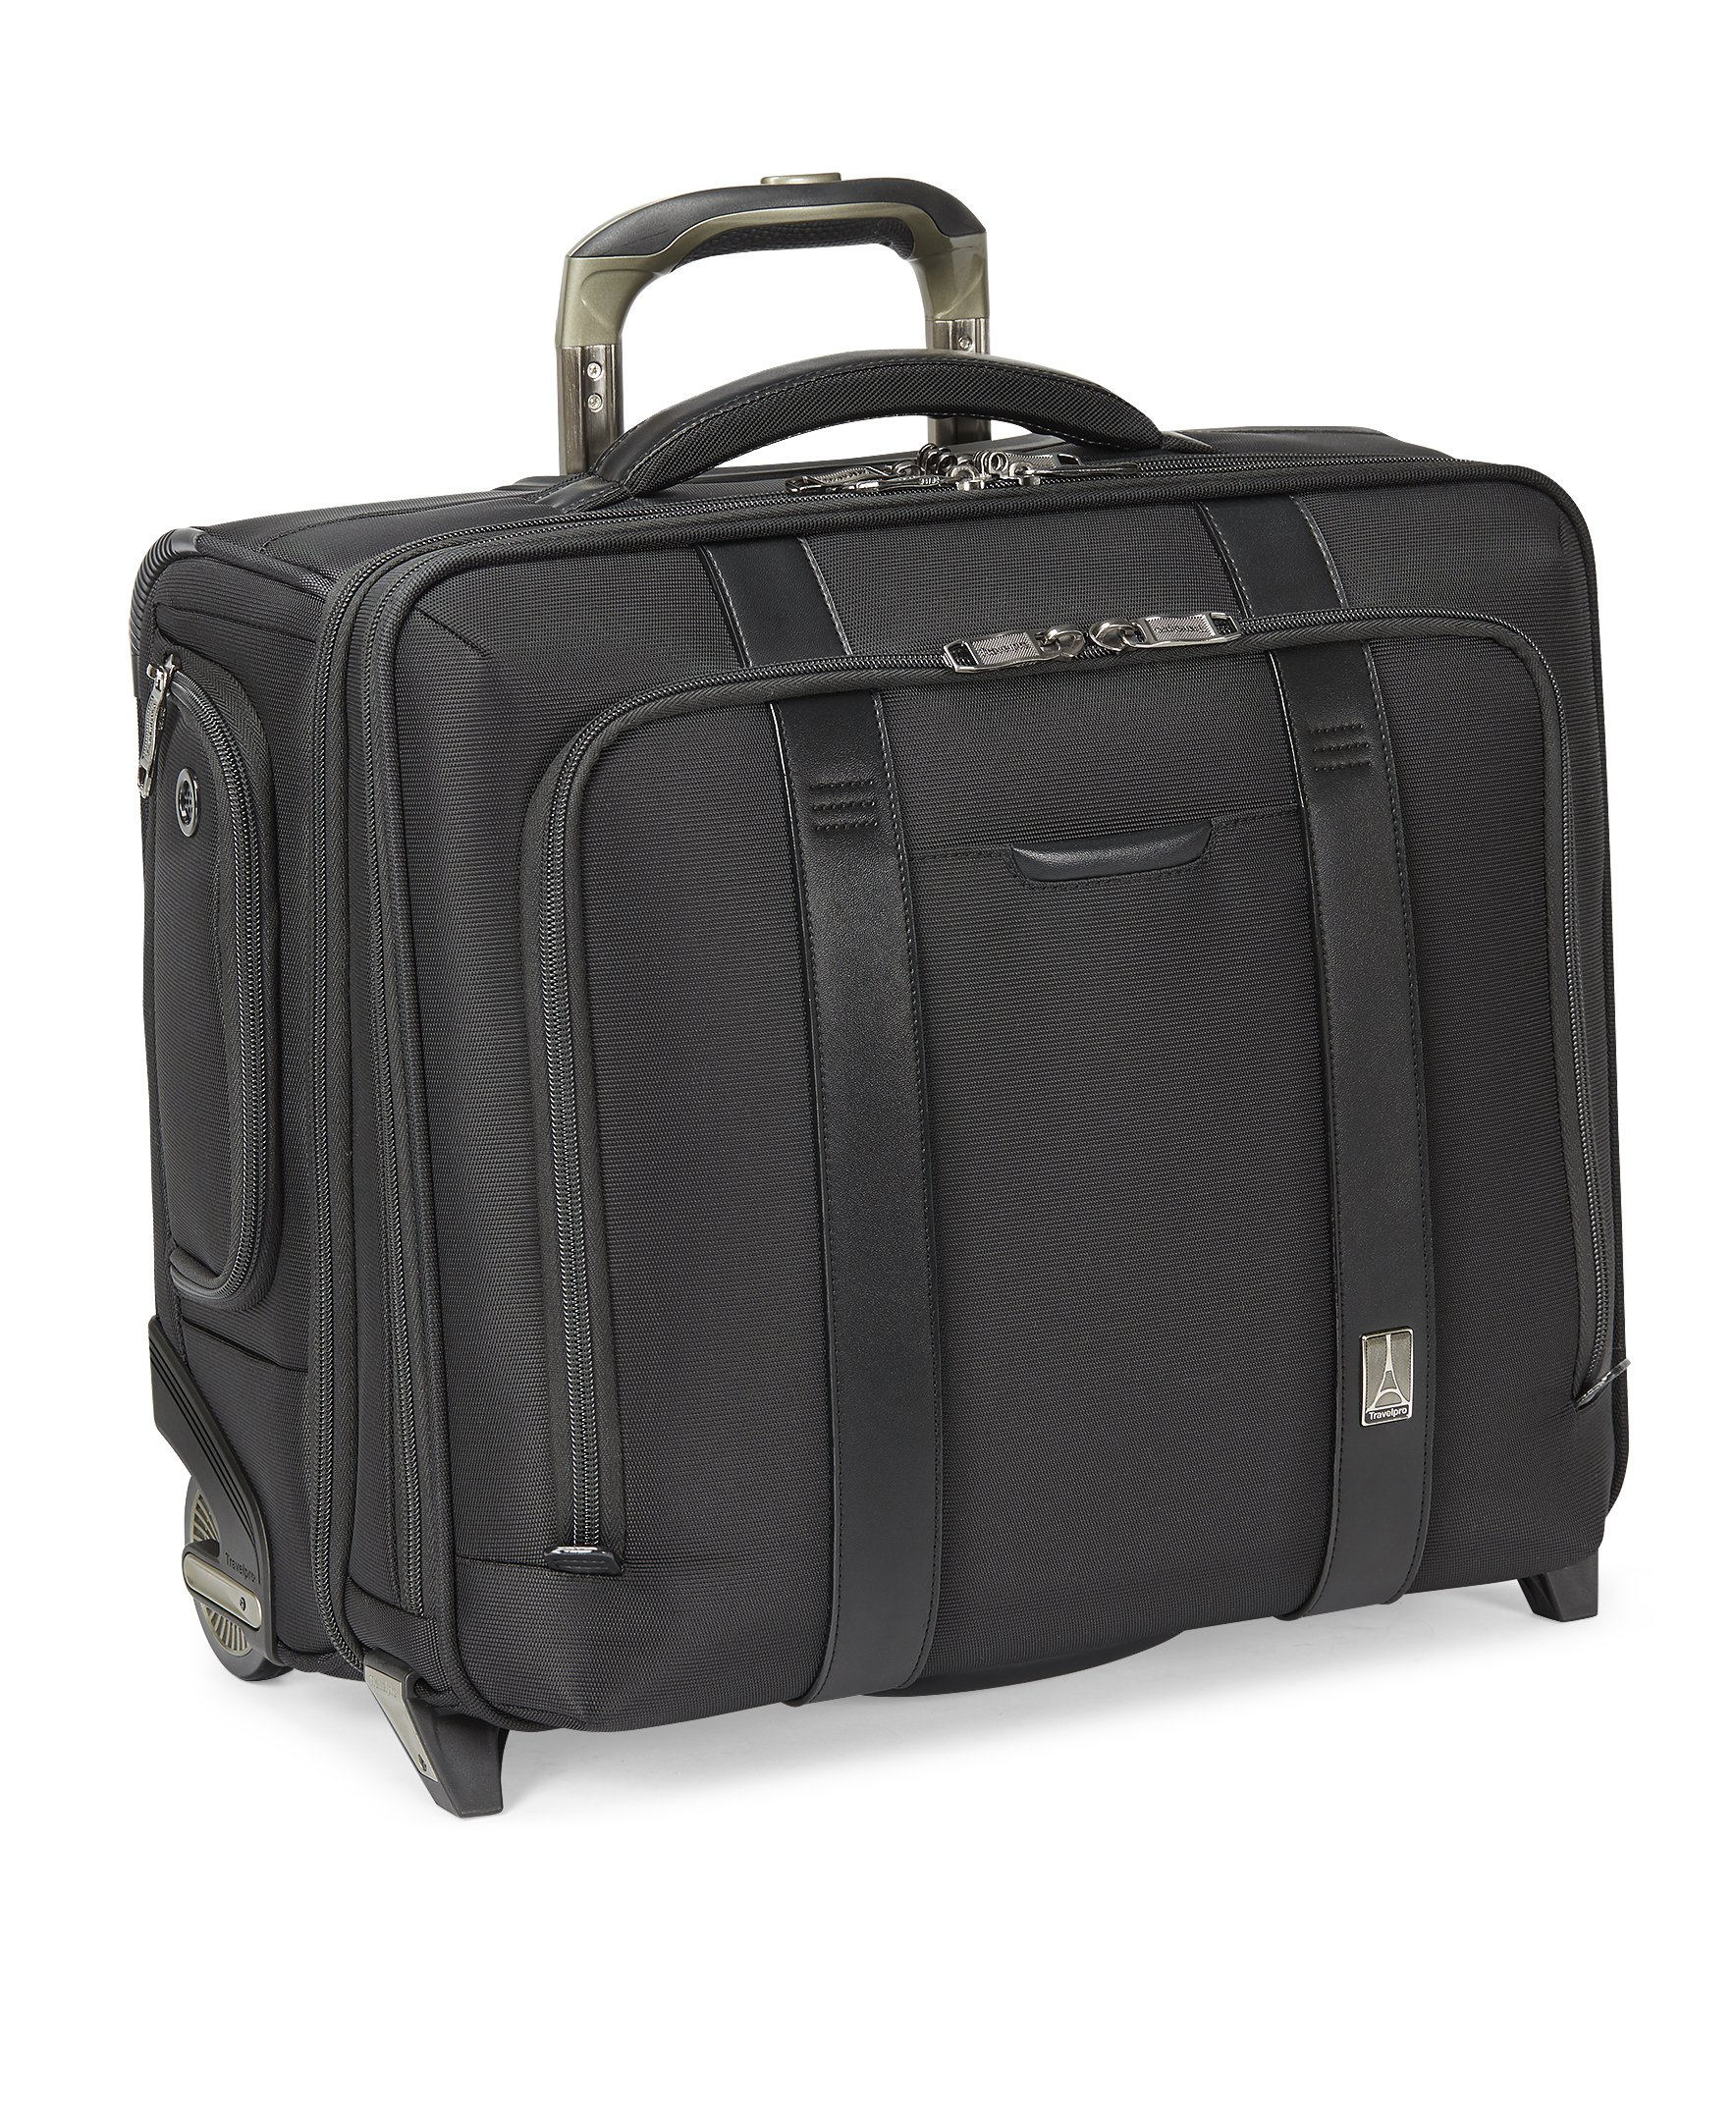 Travelpro Crew Executive Choice 2 Wheeled Brief bag, 17-in with USB port by Travelpro